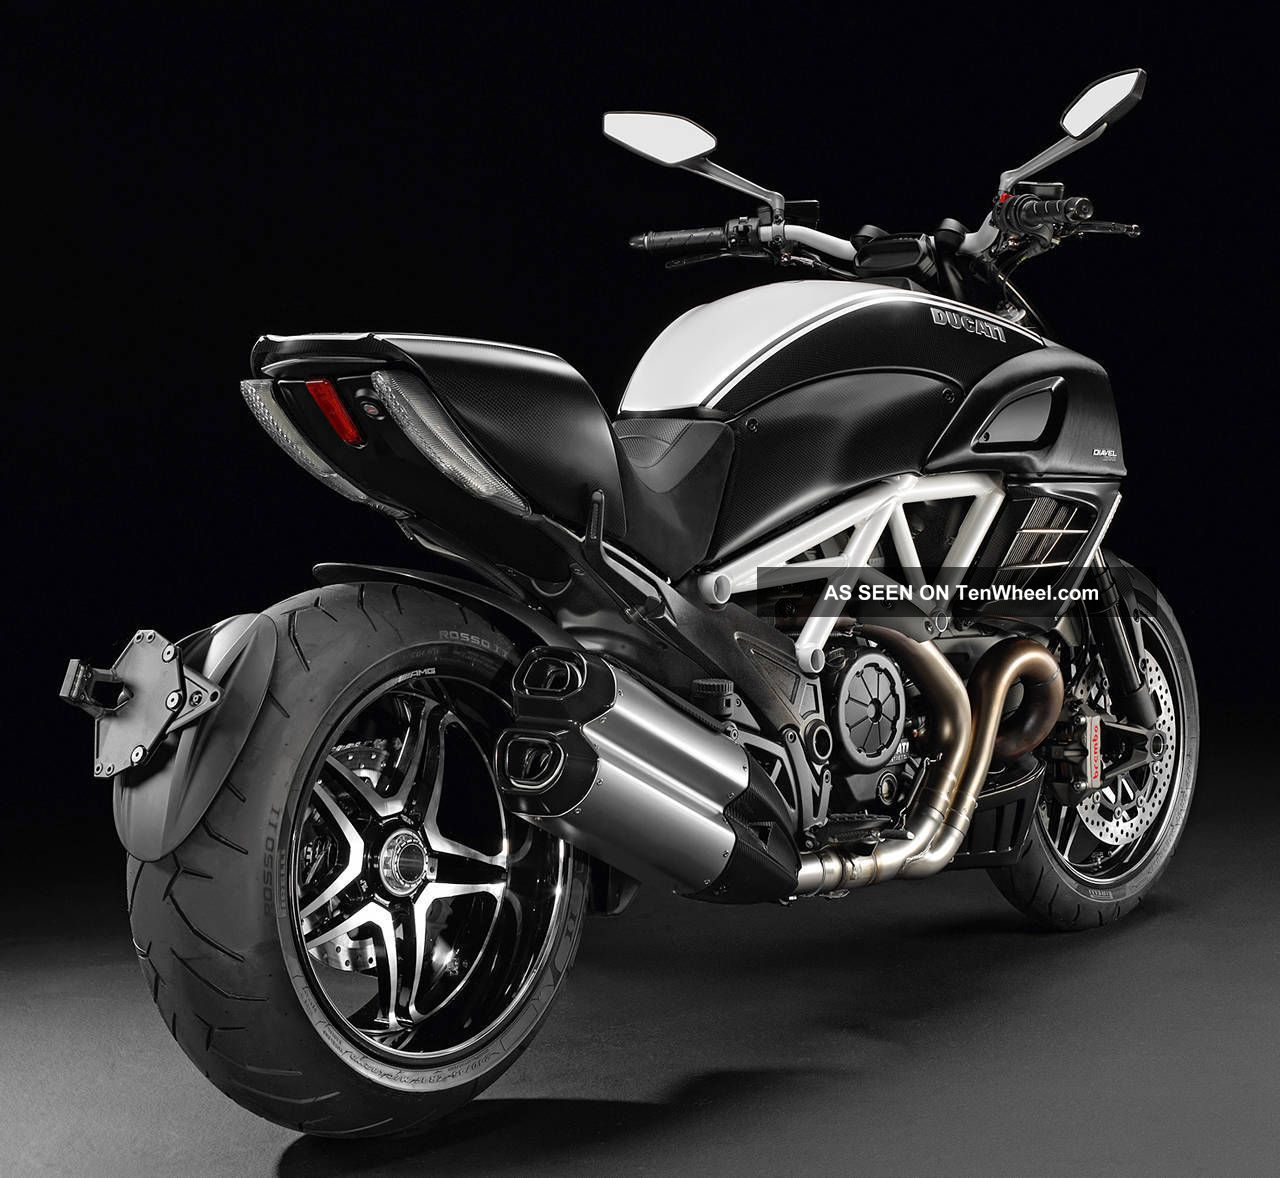 2013 Ducati Diavel Amg 917 642 - 3152 For The Best Deal